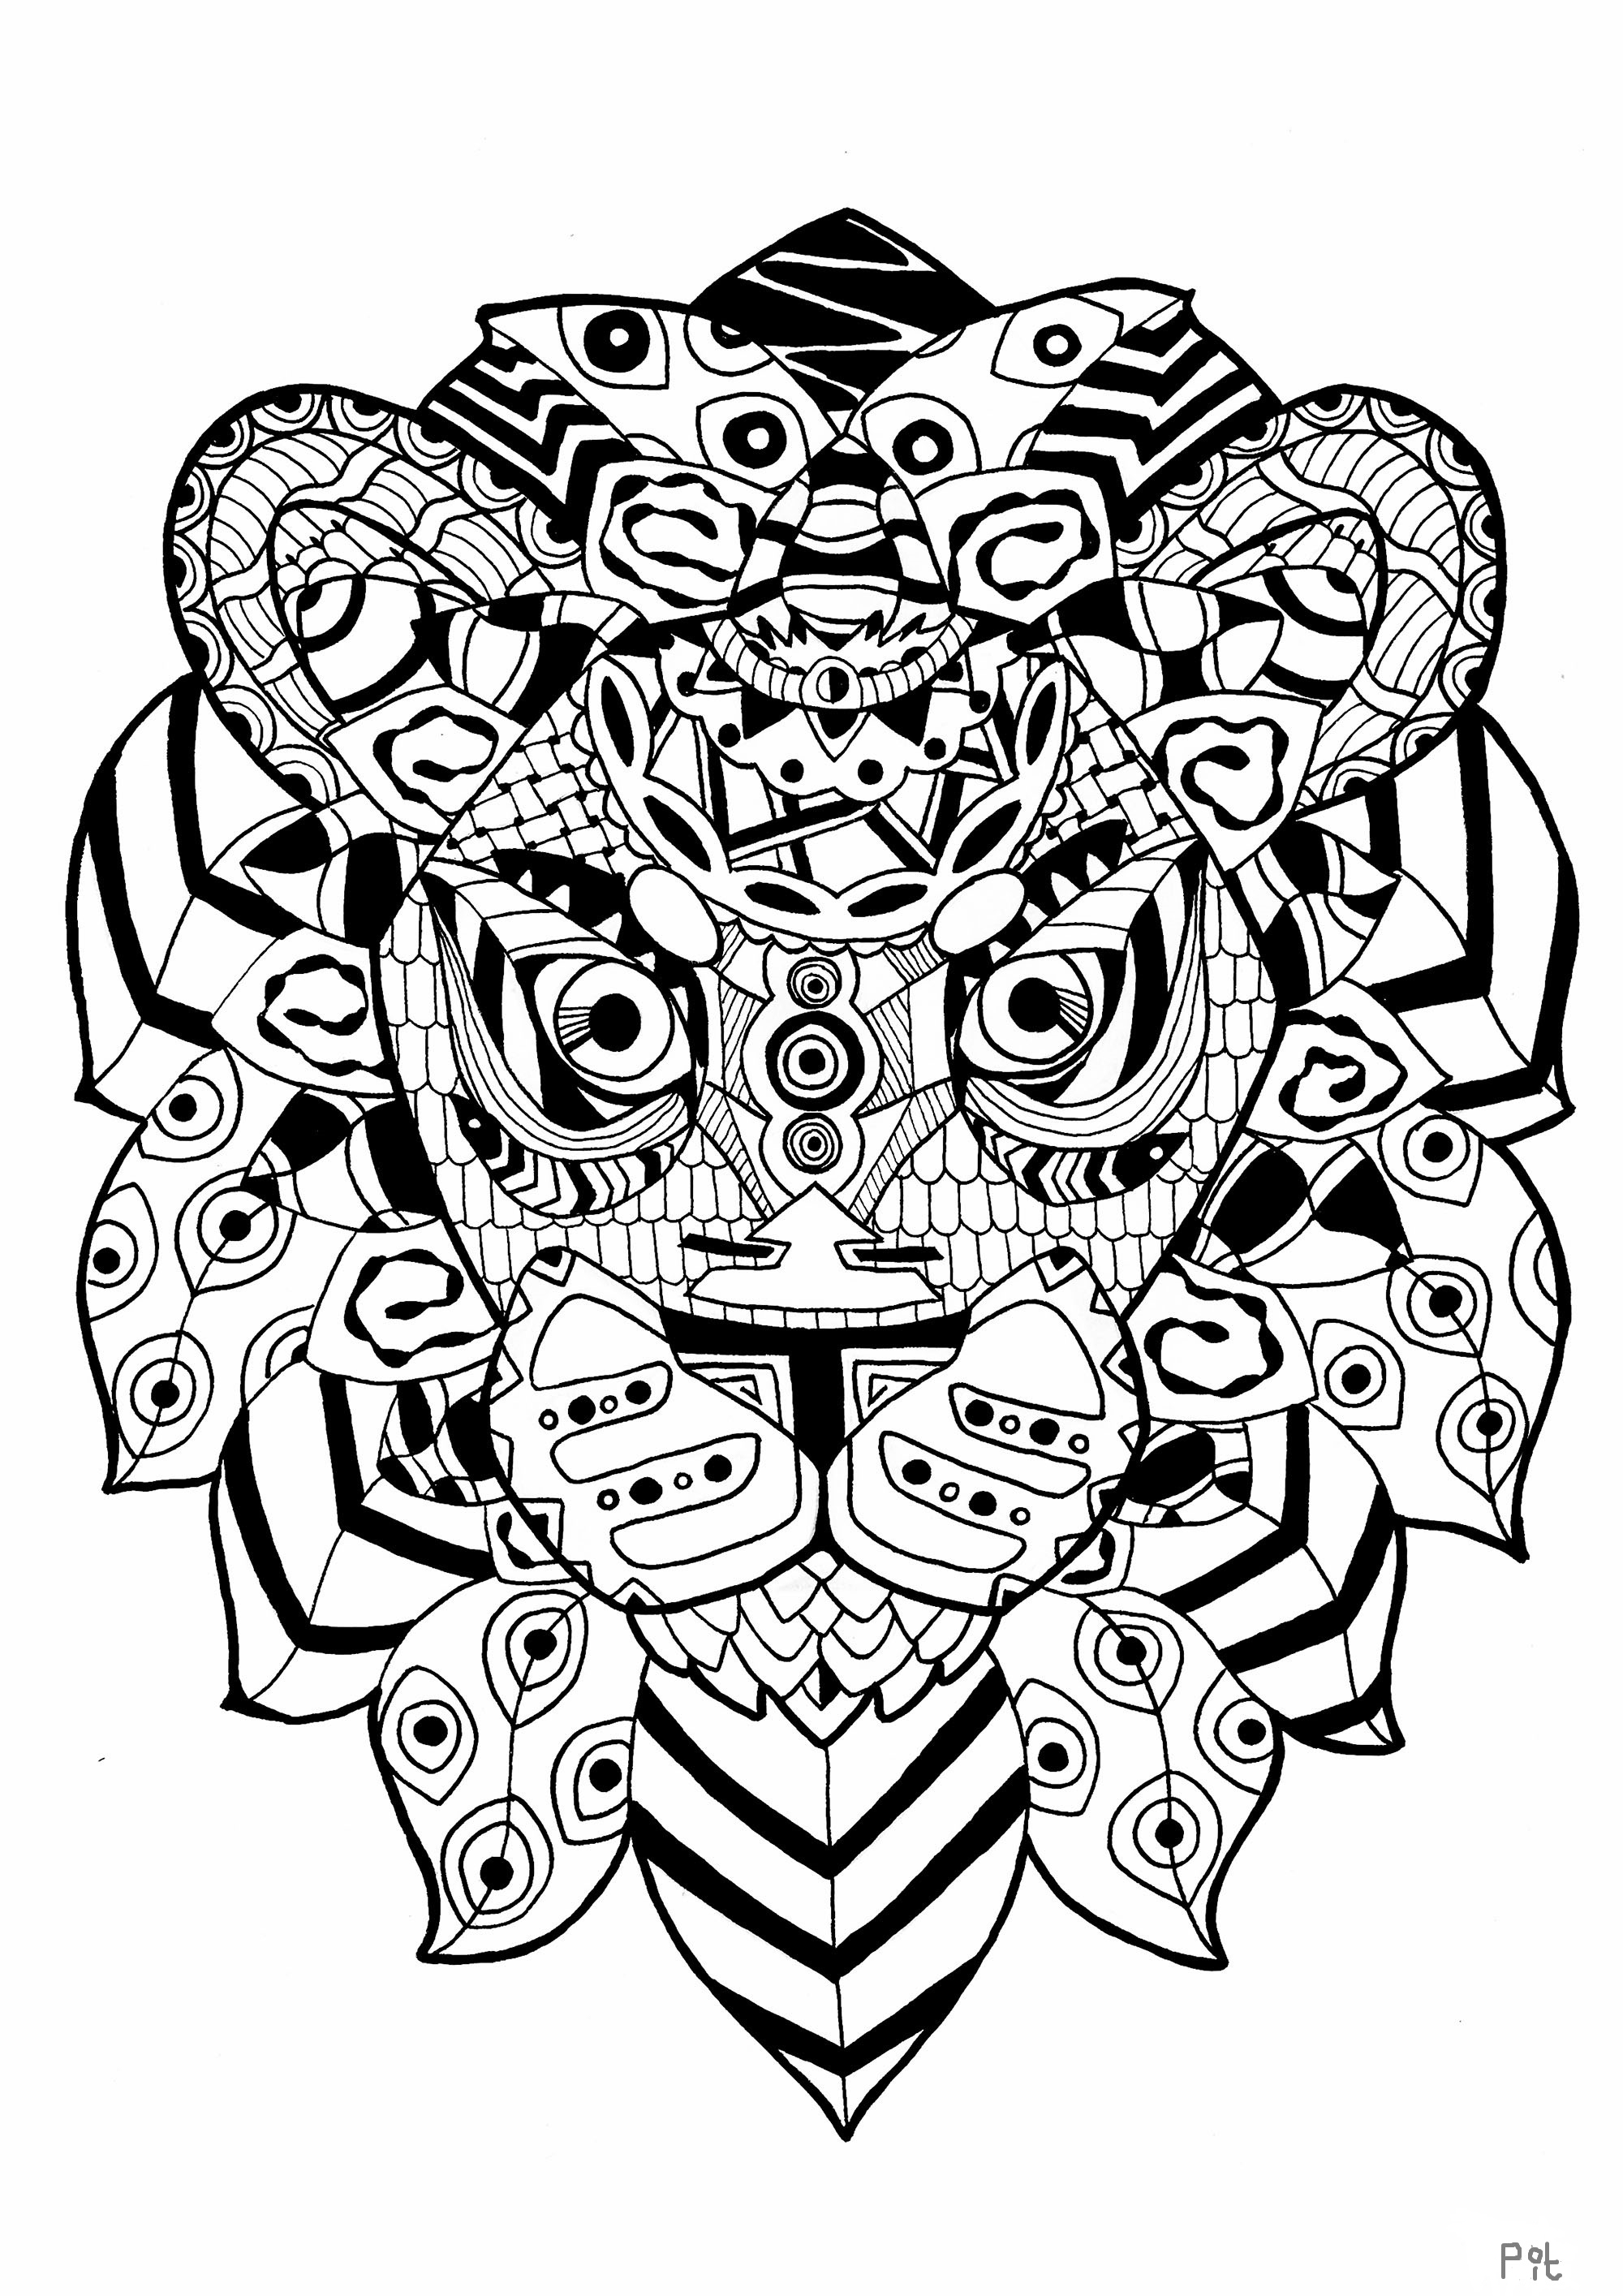 lion coloring pages for adults - image=animals coloring page adult zentangle lion 1